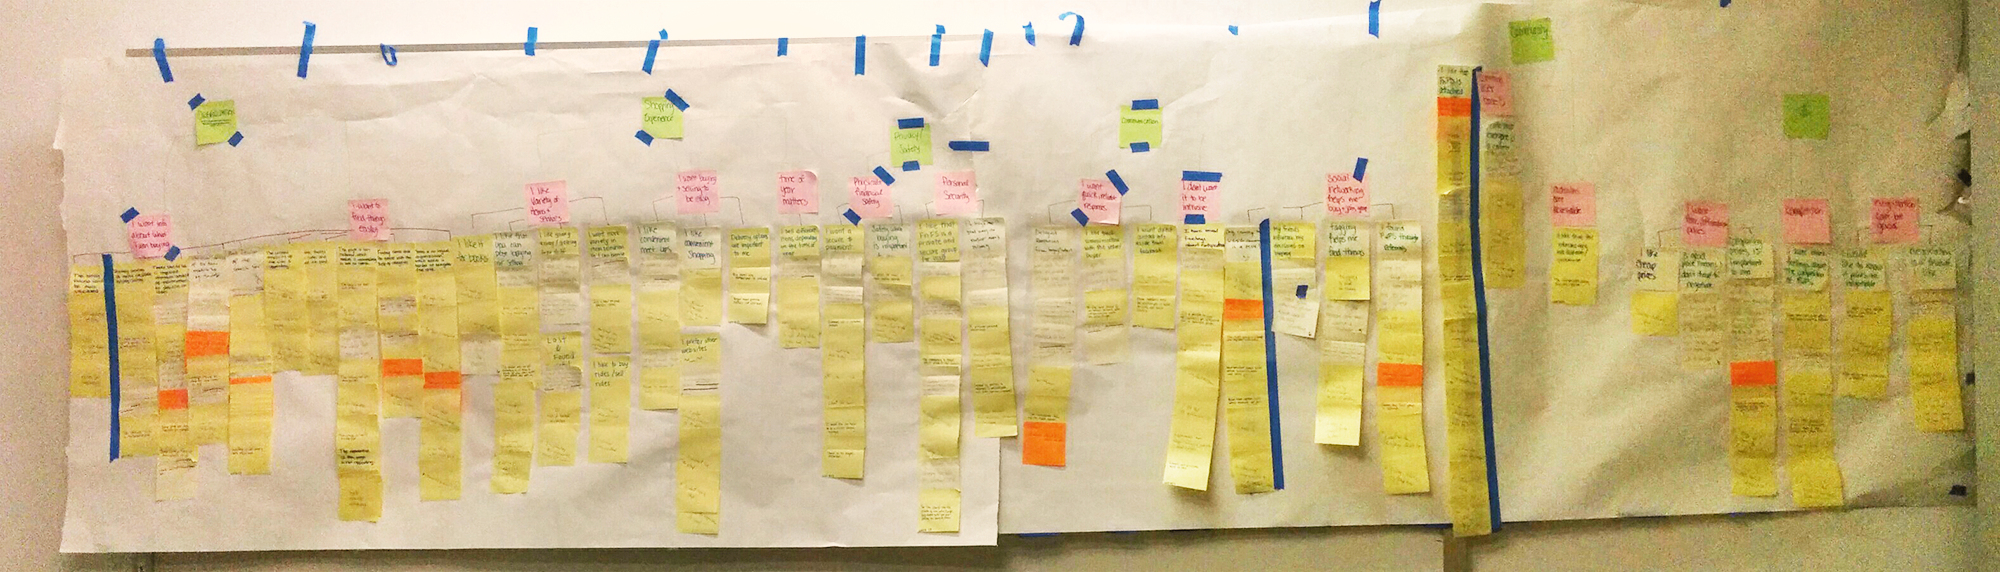 Grouping themes and pain points onto an affinity diagram